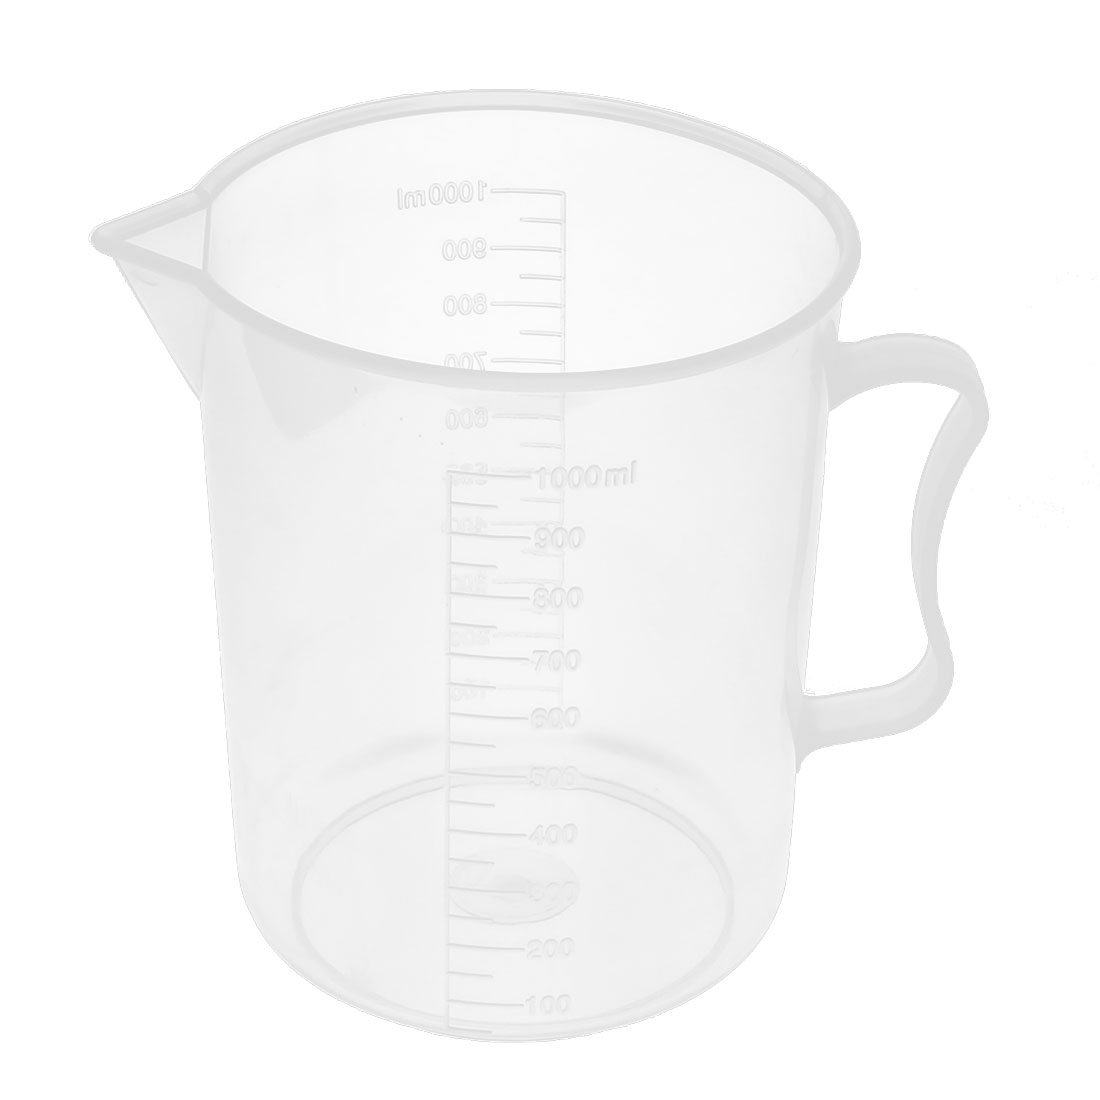 Lab Chemistry Experiment Liquid Storage Measuring Testing Beaker Cup 1000ml